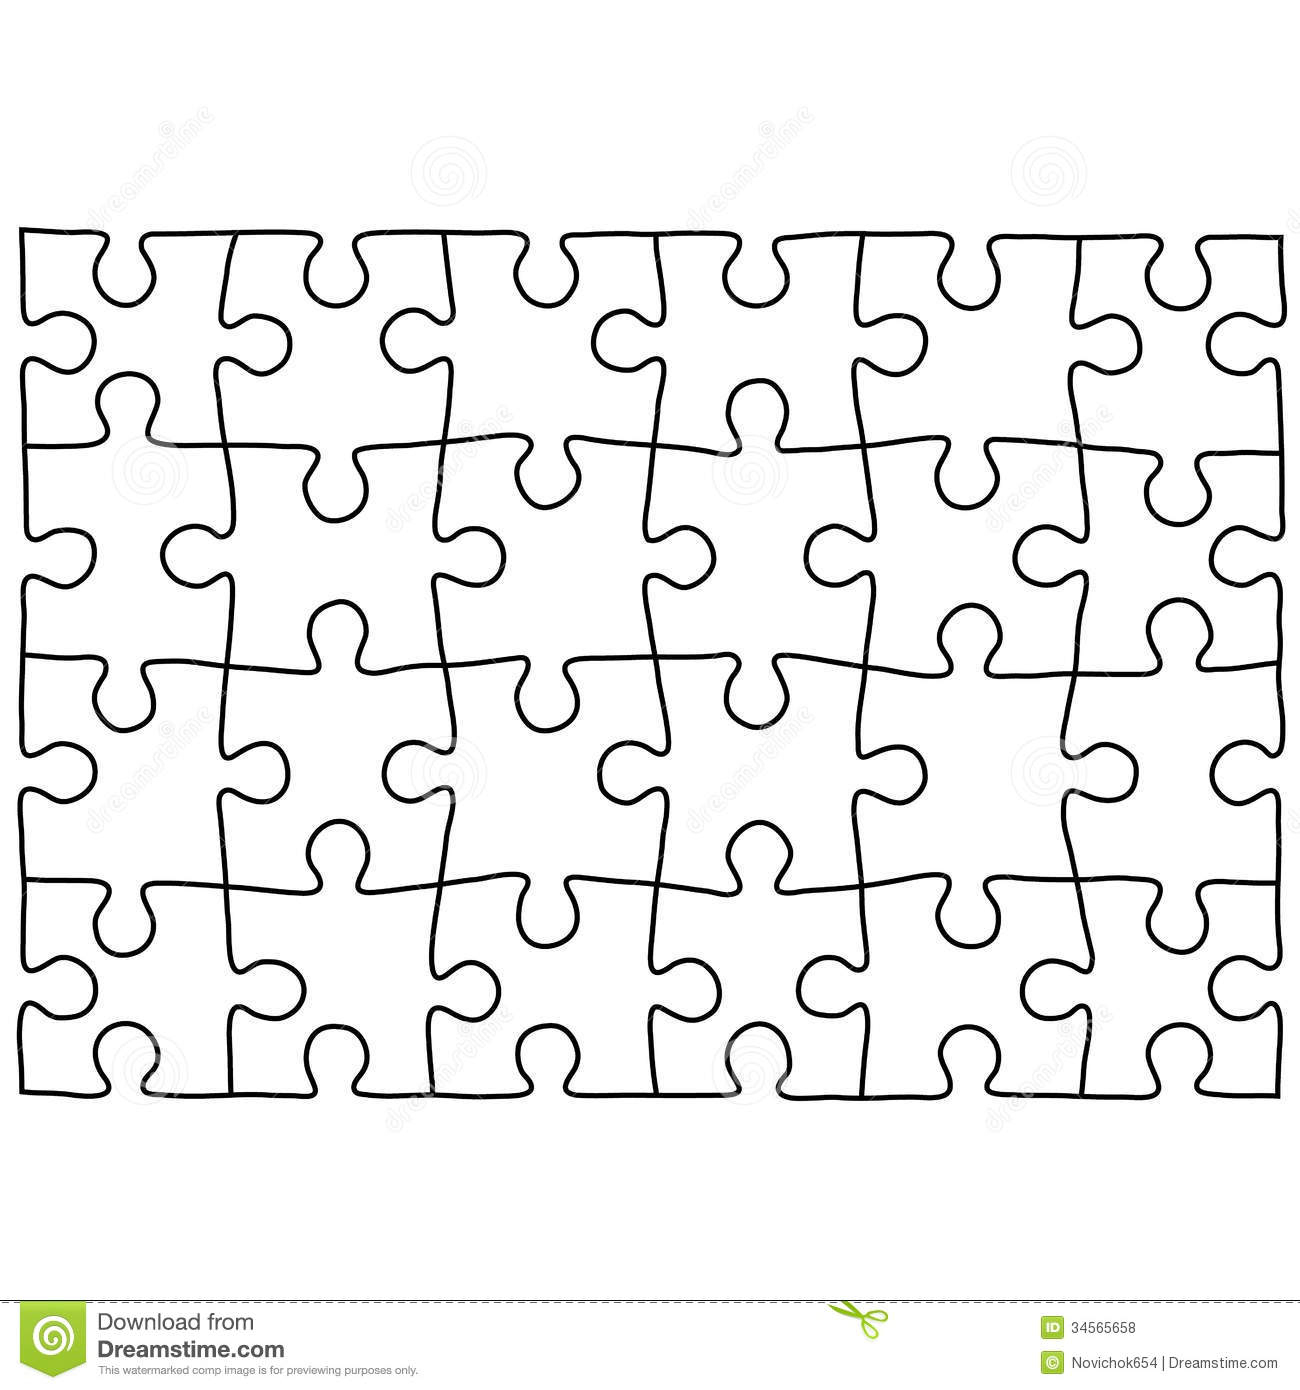 Free Puzzle Template, Download Free Clip Art, Free Clip Art On - Printable Jigsaw Puzzle Generator